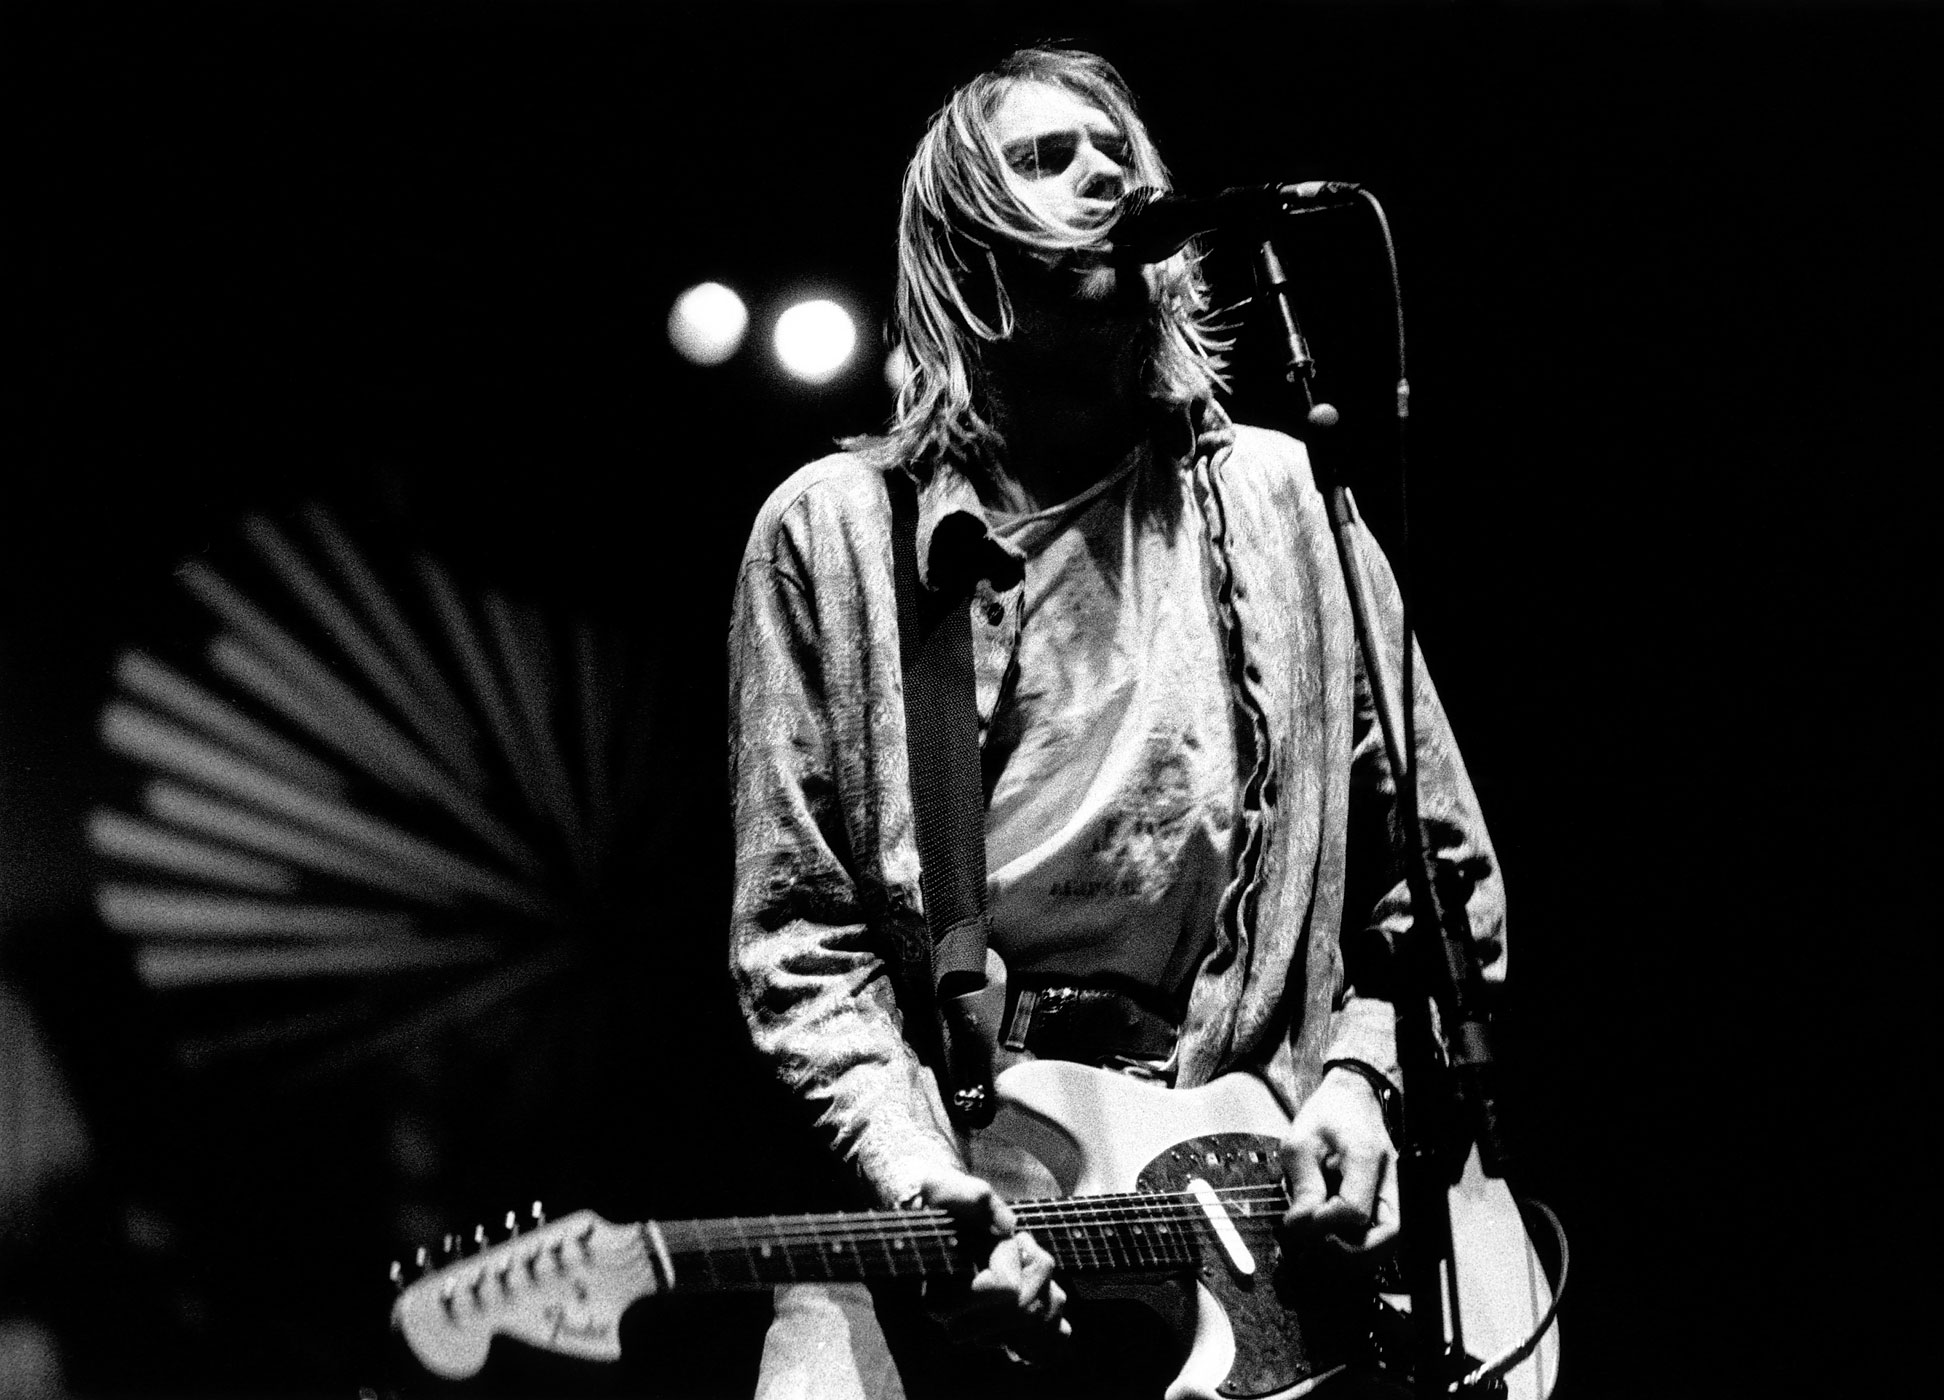 Kurt Cobain performs live onstage in Modena, Italy on Feb. 21, 1994.